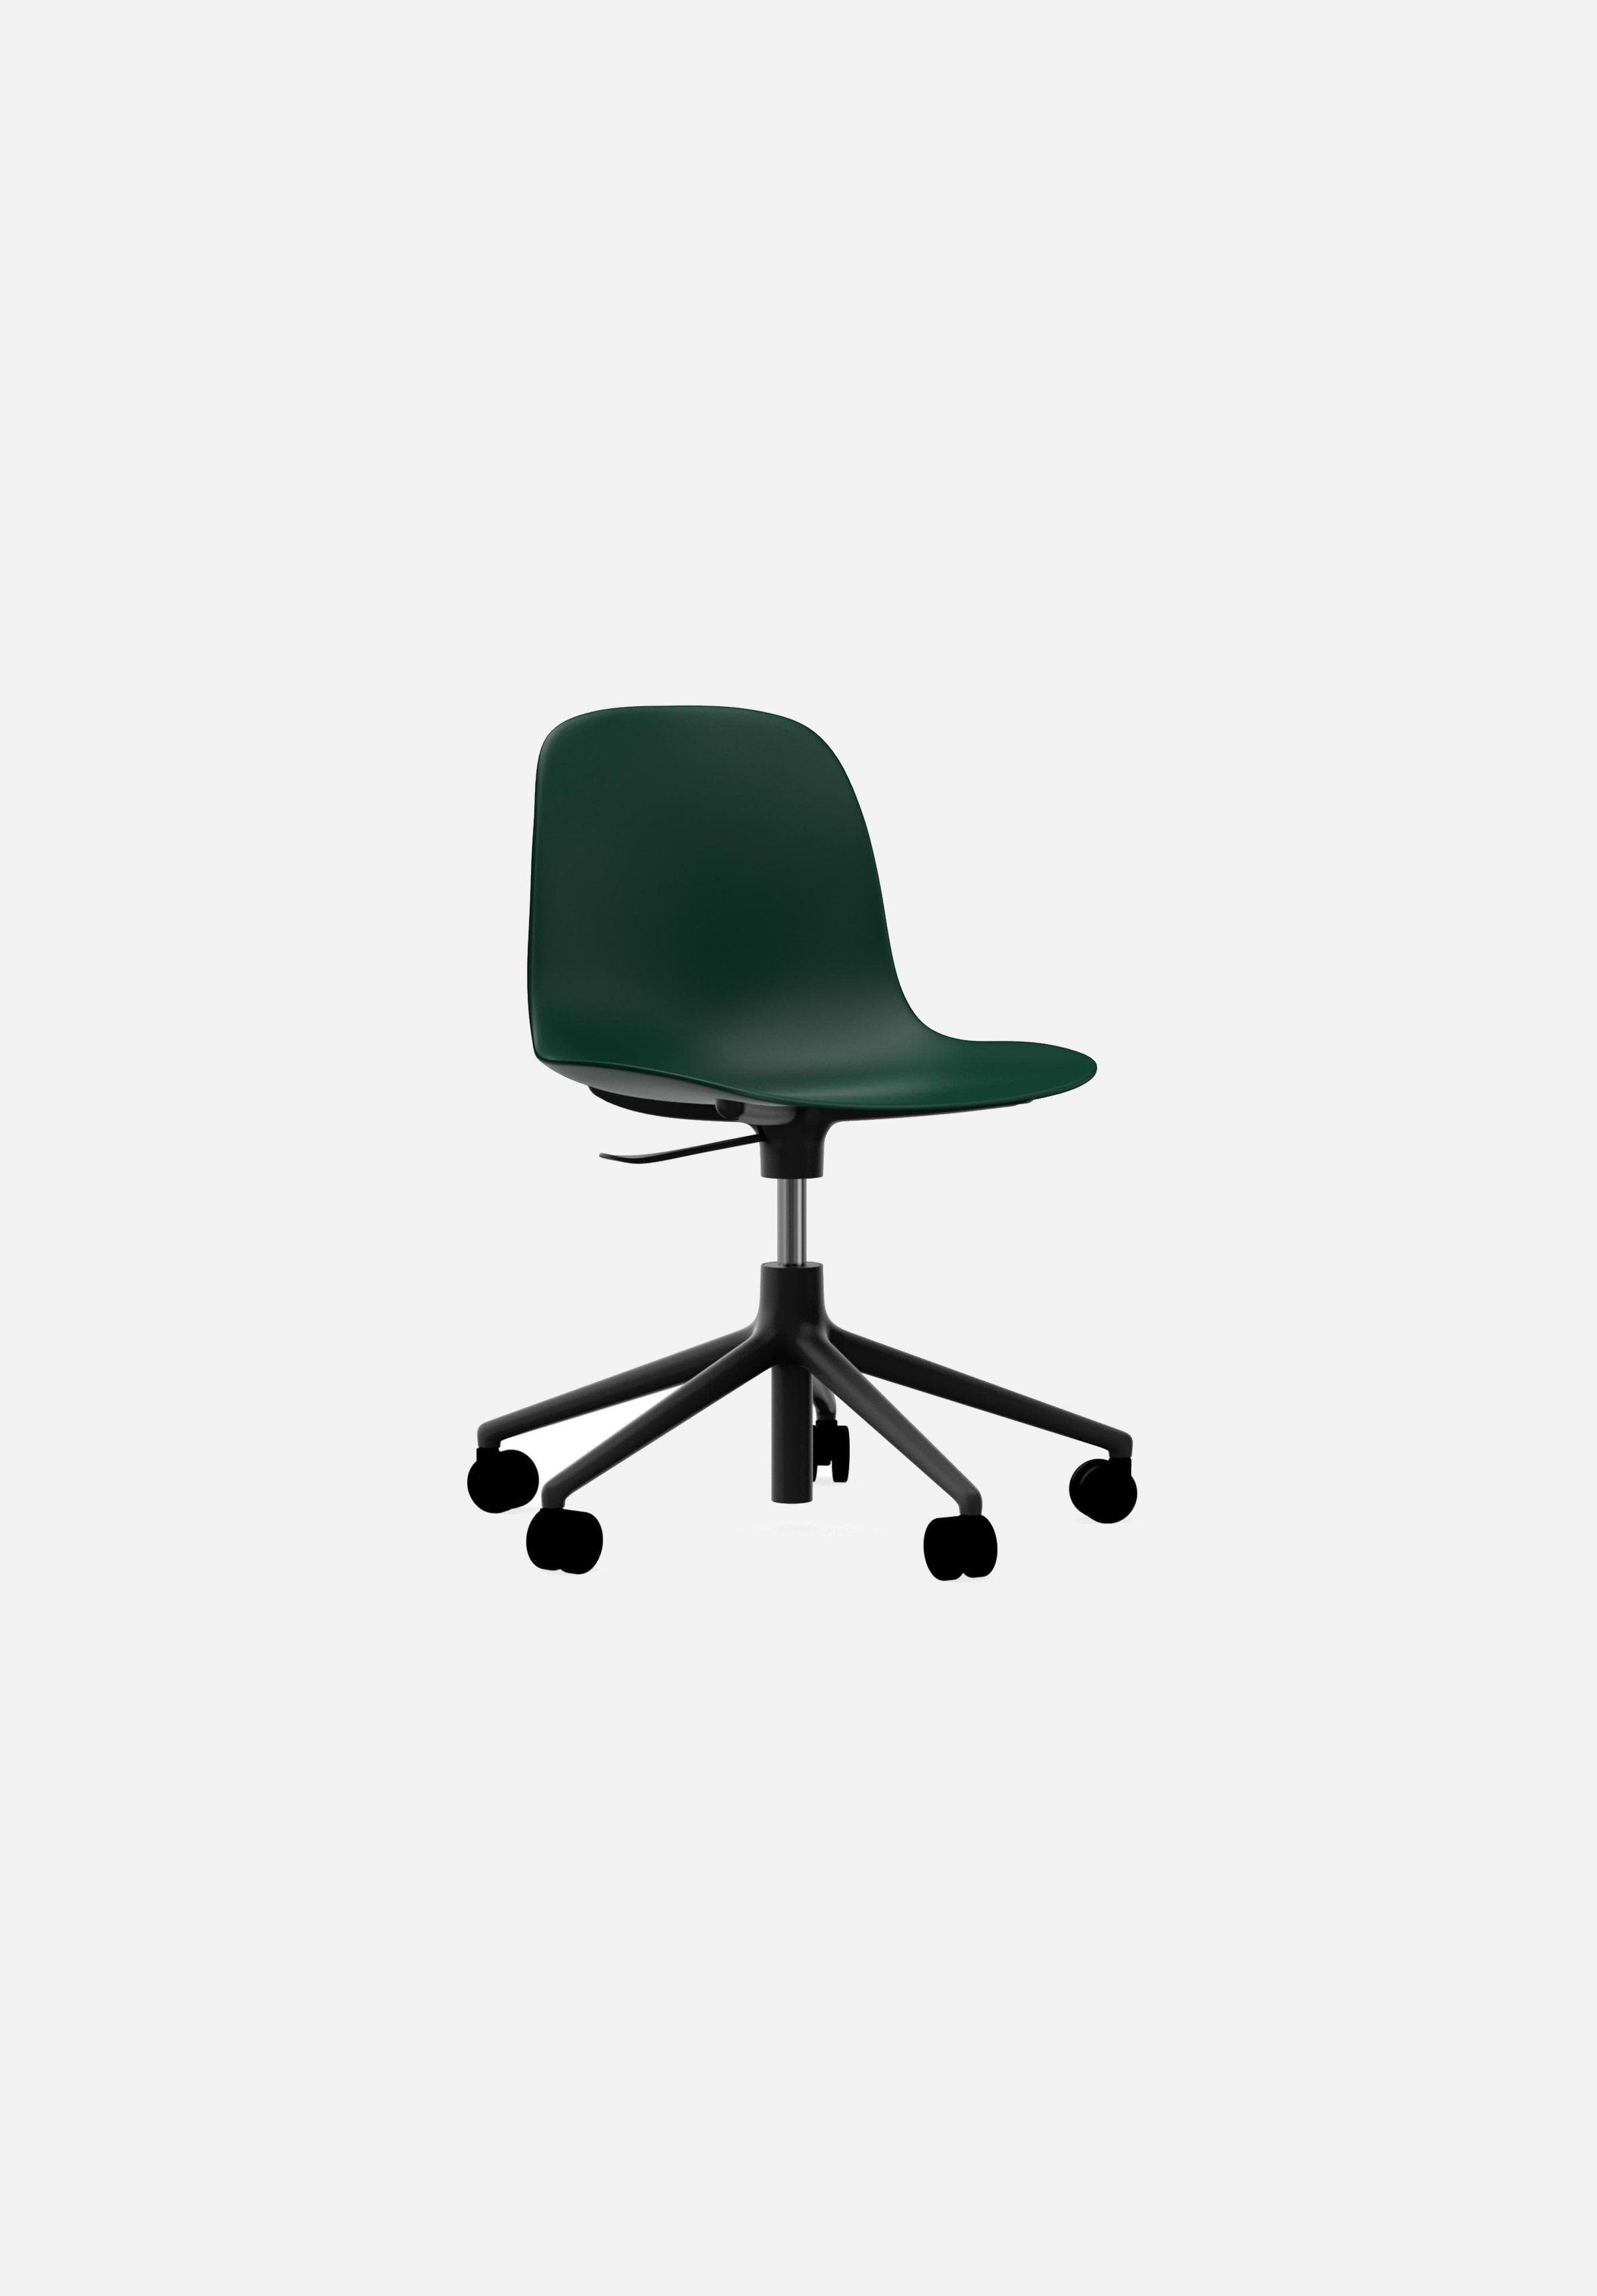 Form Chair — Swivel Gaslift-Simon Legald-Normann Copenhagen-Green-Black Aluminum-Average